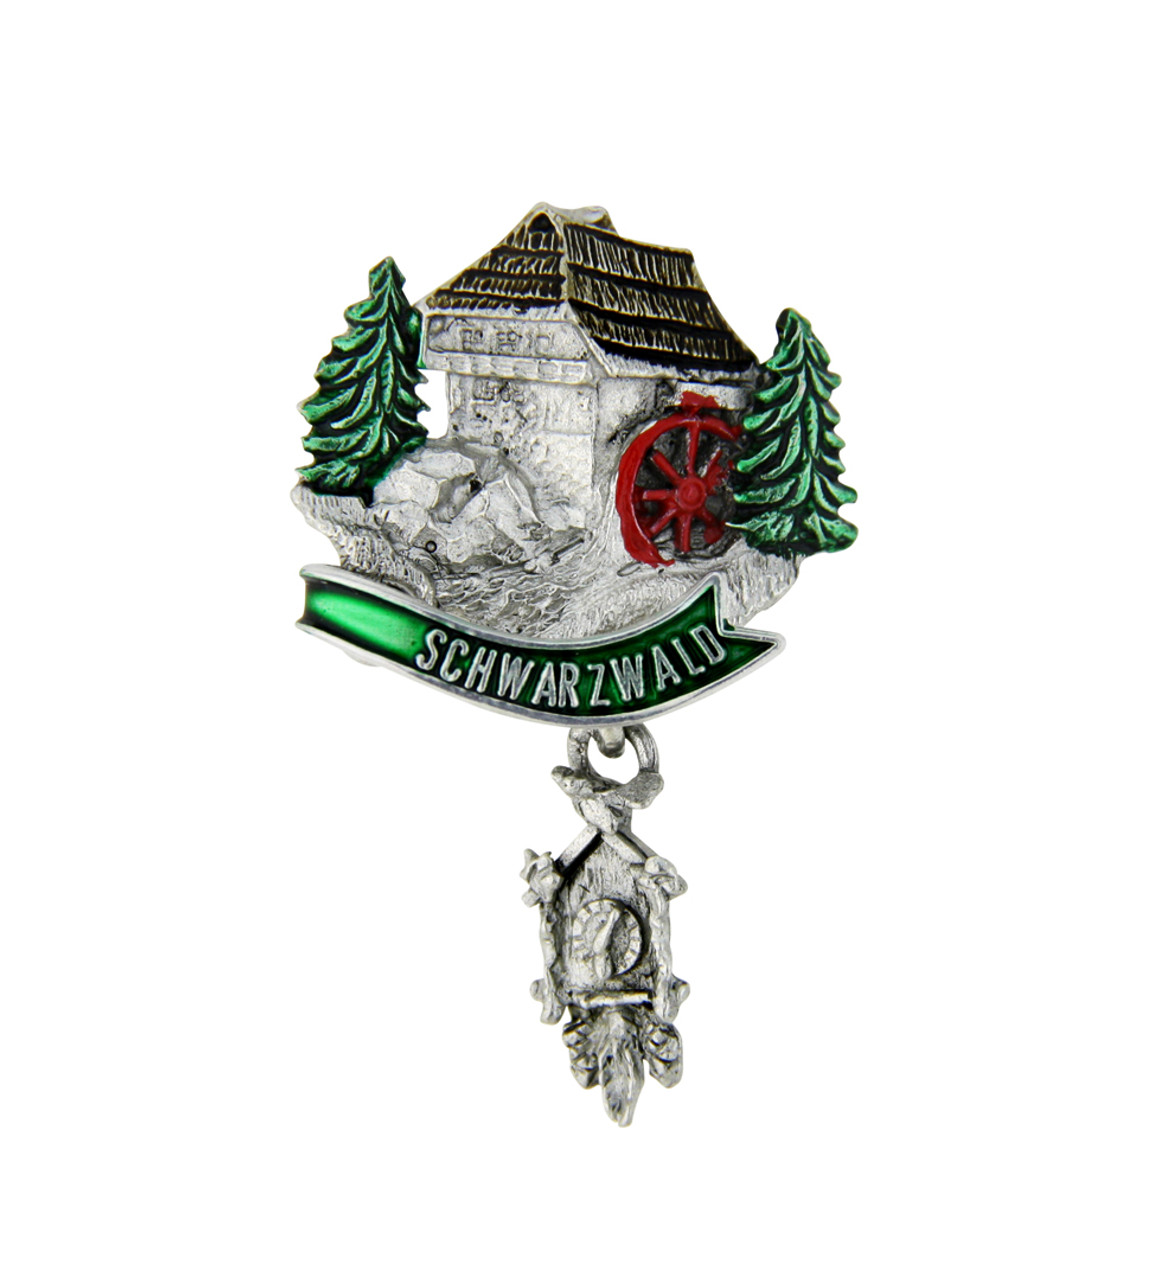 Schwarzwald House German Hat Pin with Cuckoo Clock